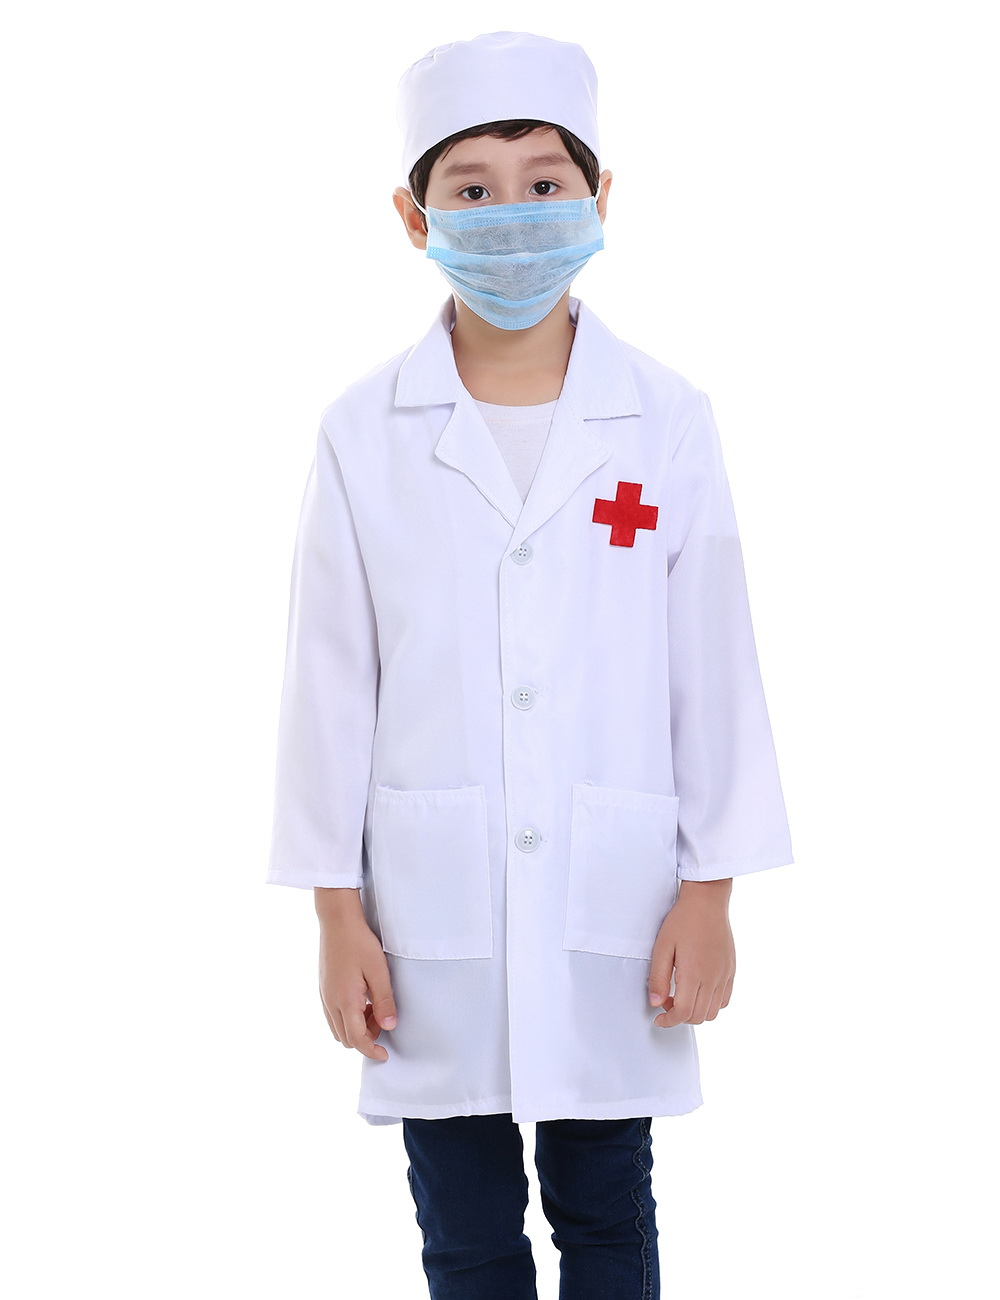 Child Boys Girls Jacket Kid Doctor Dr White Lab Coat Dentist Scientist Costume